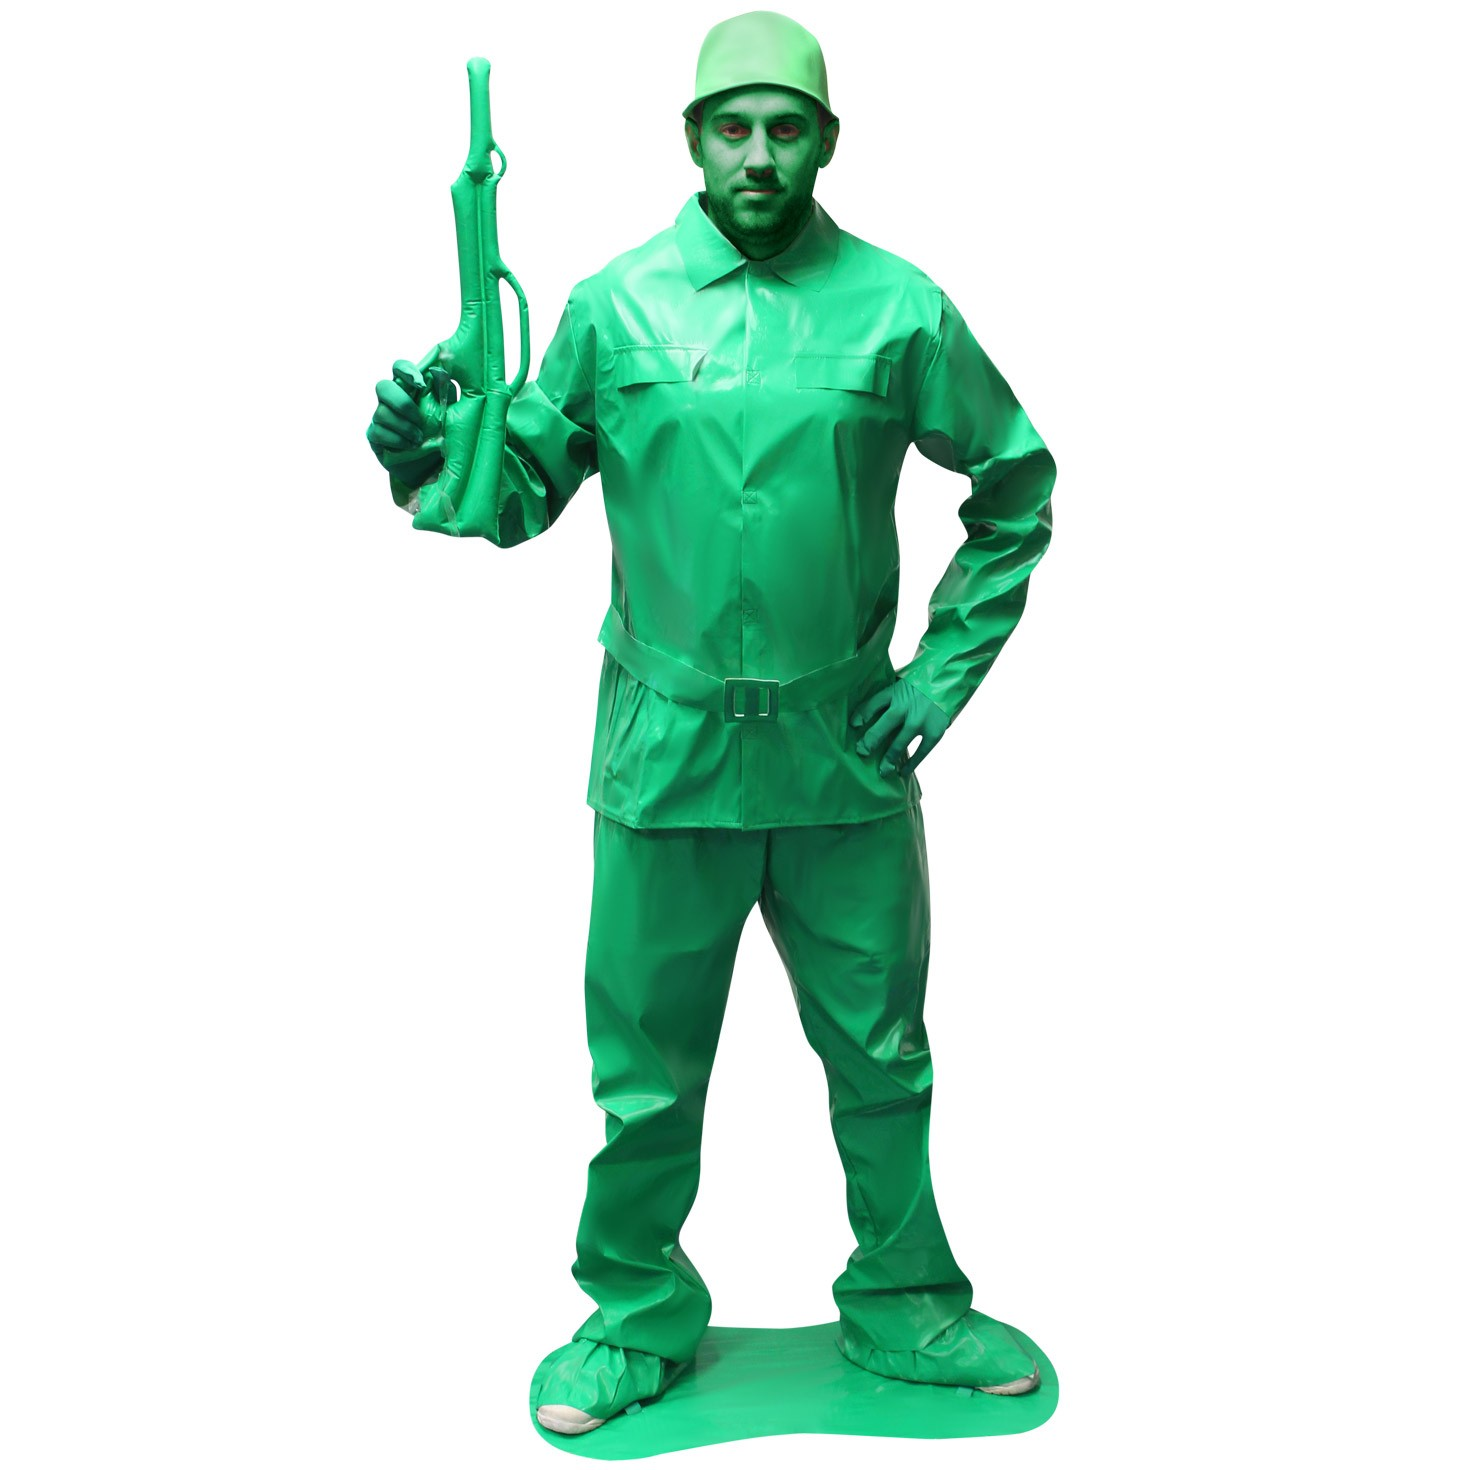 Details about Mens Toy Soldier Fancy Dress Costume Military Army Outfit Saving Private Morph